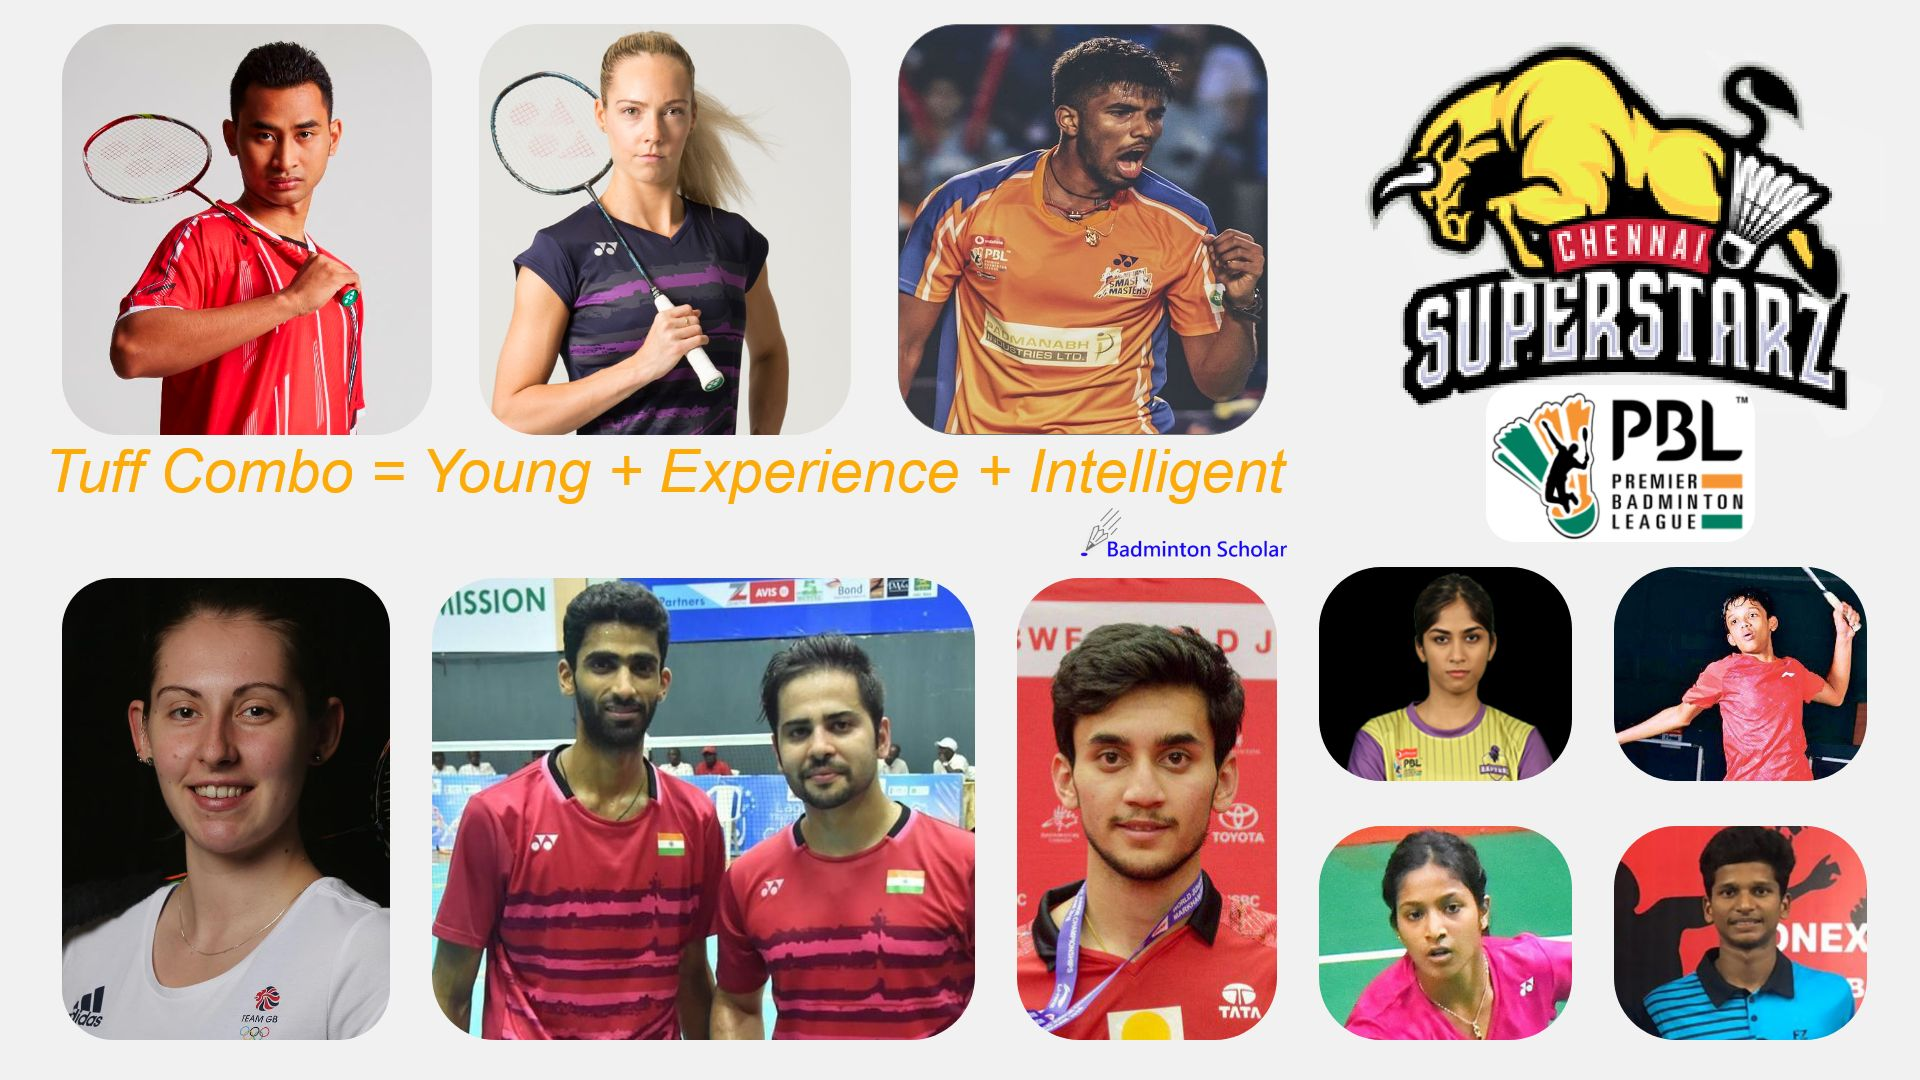 Chennai Superstarz trump matches would be XD or MD matches during PBL Season 5